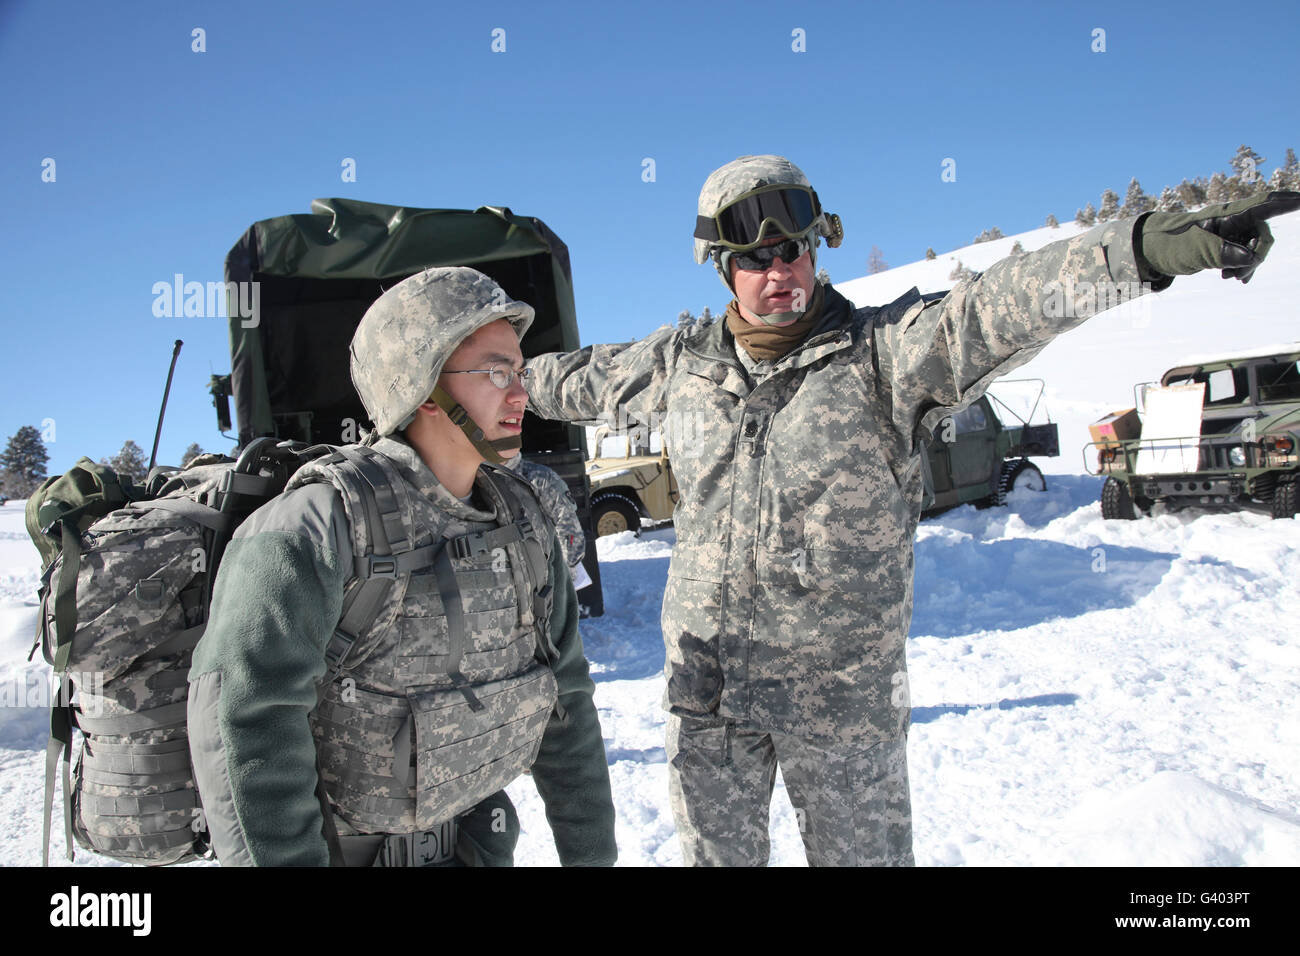 Army Specialist receives guidance as he begins a land navigation event. - Stock Image